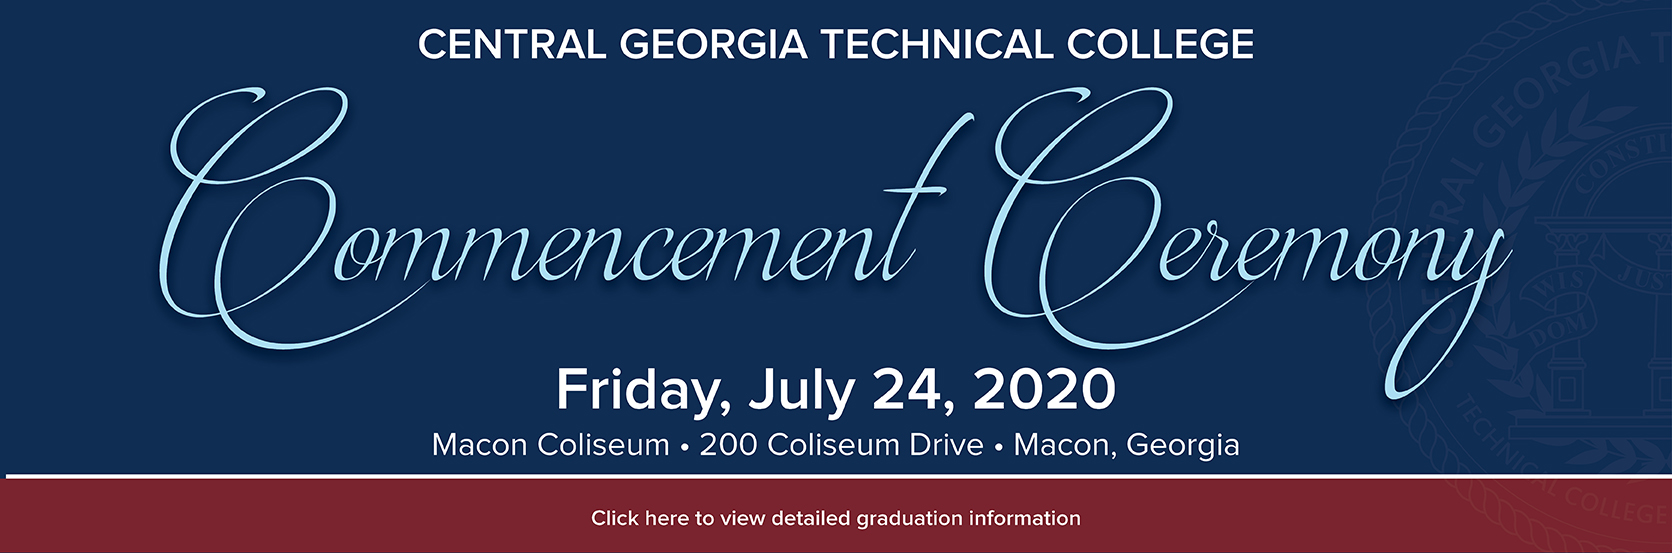 2020 Graduation Ceremony will take place on Friday, July, 2020. Visit www.centralgatech.edu/graduation for more details.